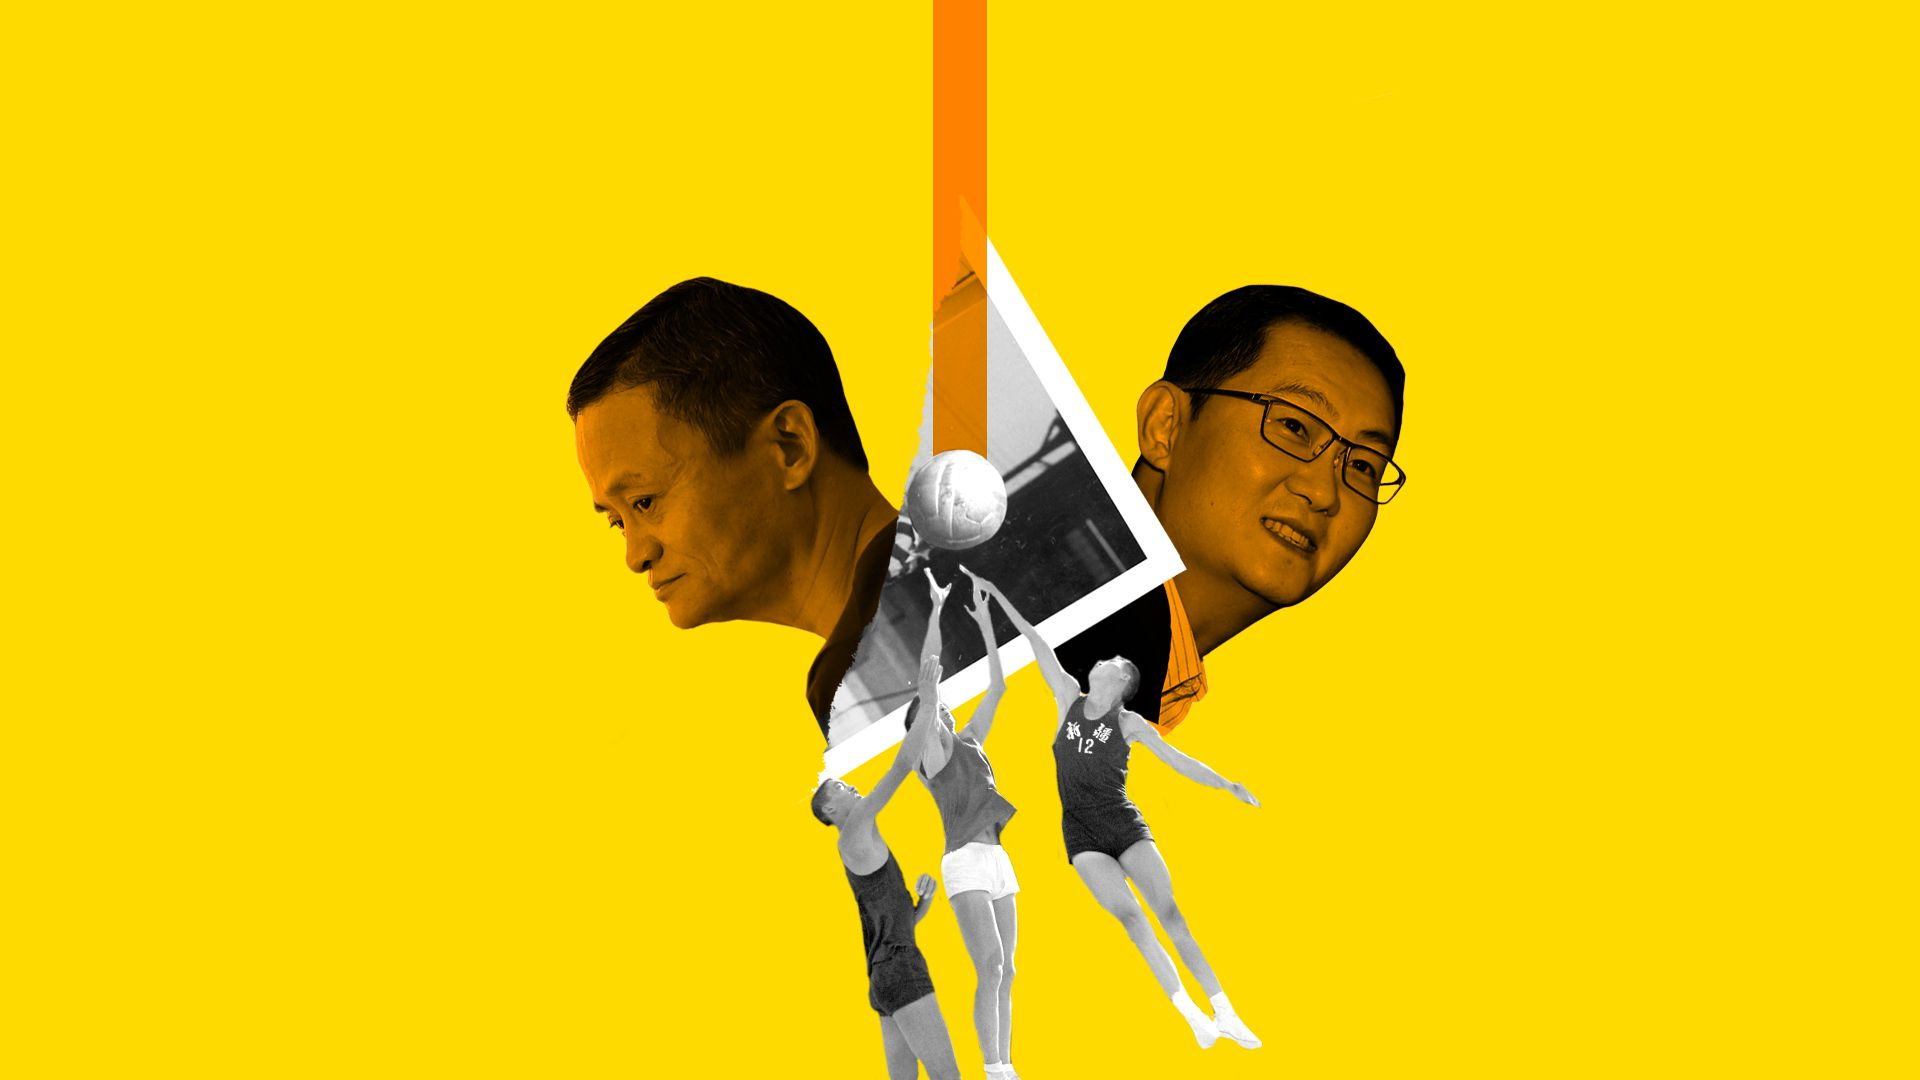 Collage illustration of Jack Ma, Alibaba, and Ma Huateng, Tenecent, over a historical image of basketball players from China.